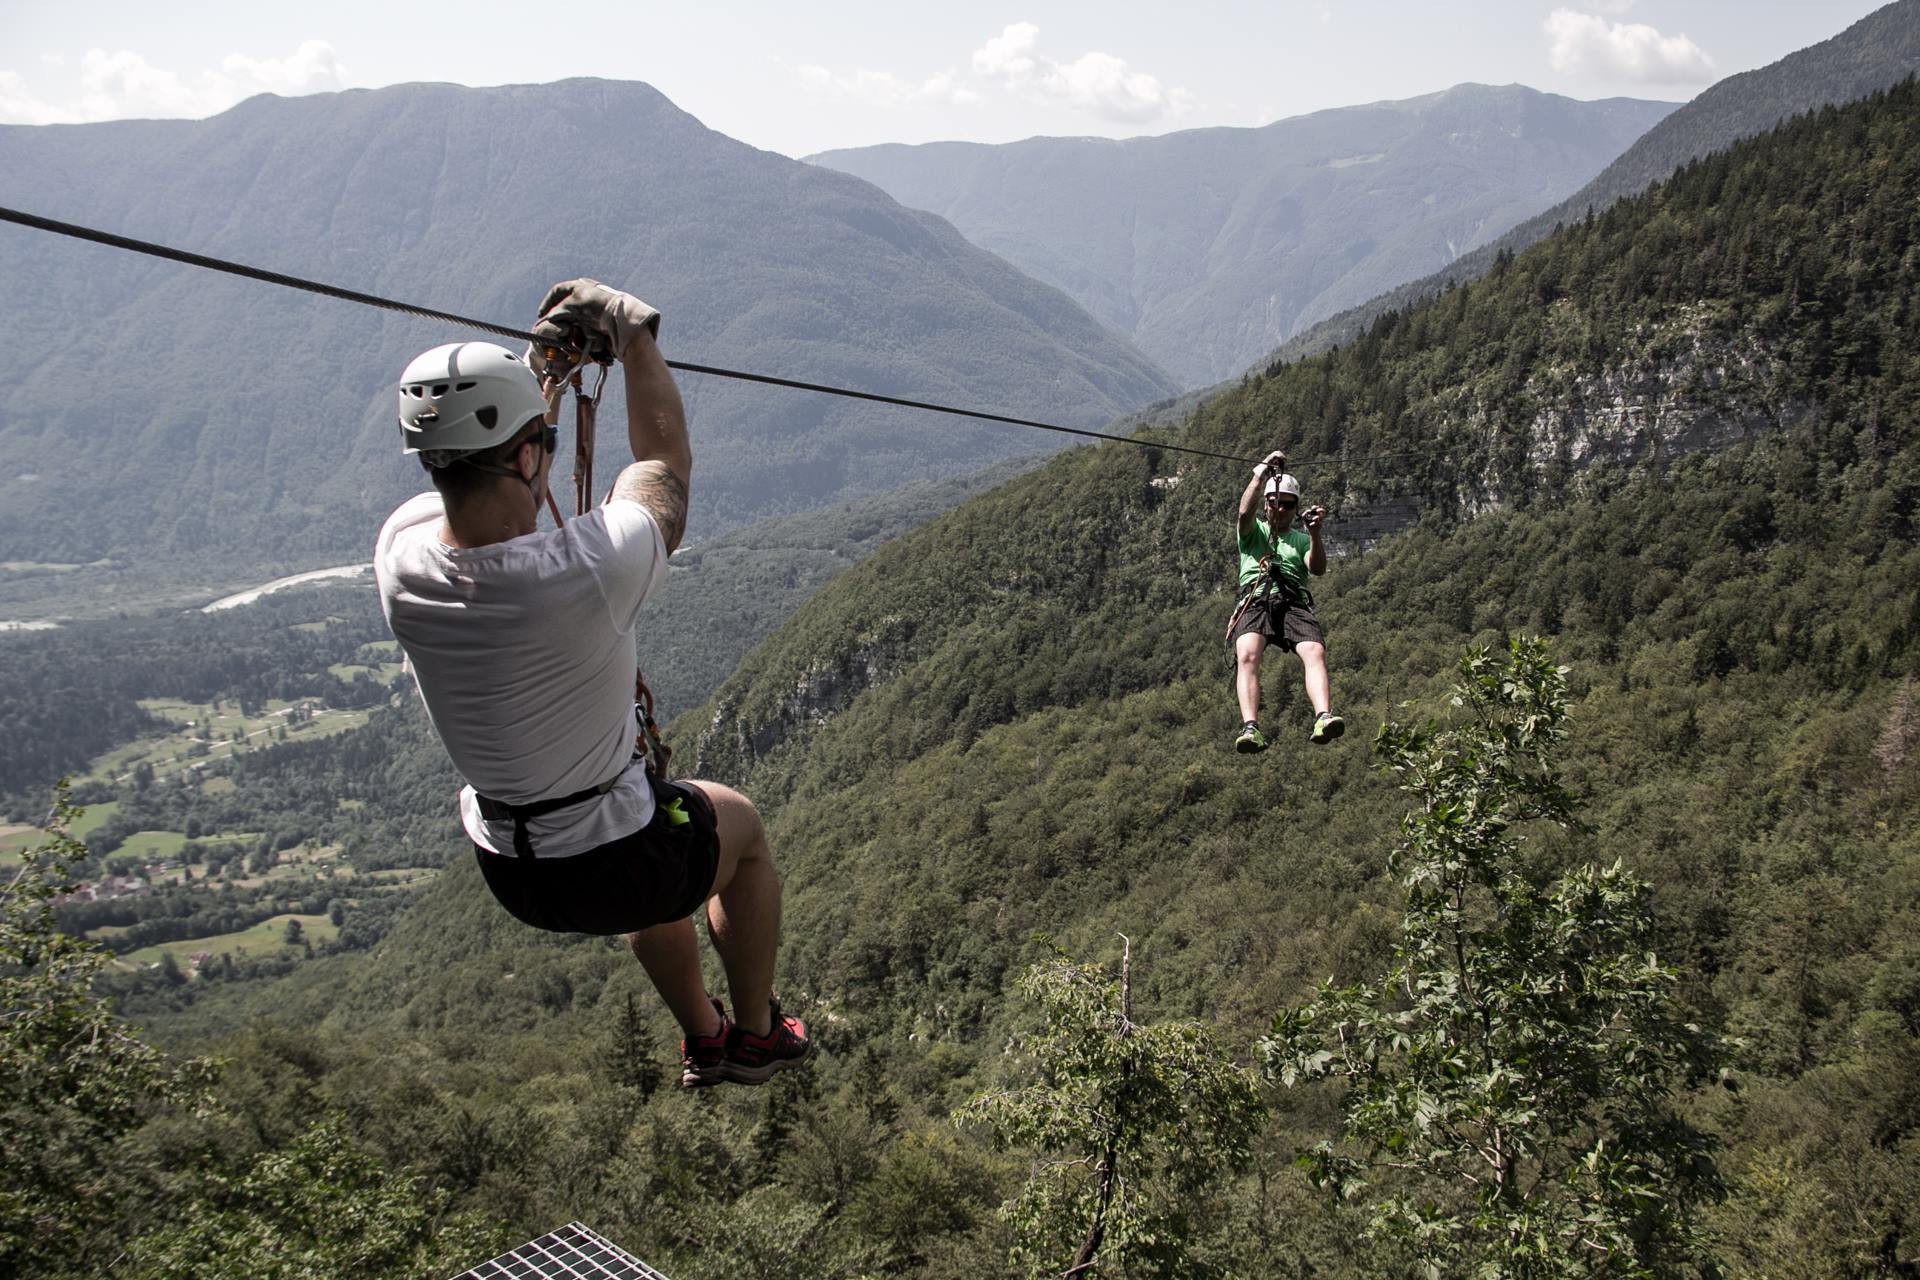 Cable Zip Line : Zip line in bovec slovenia river rafter english